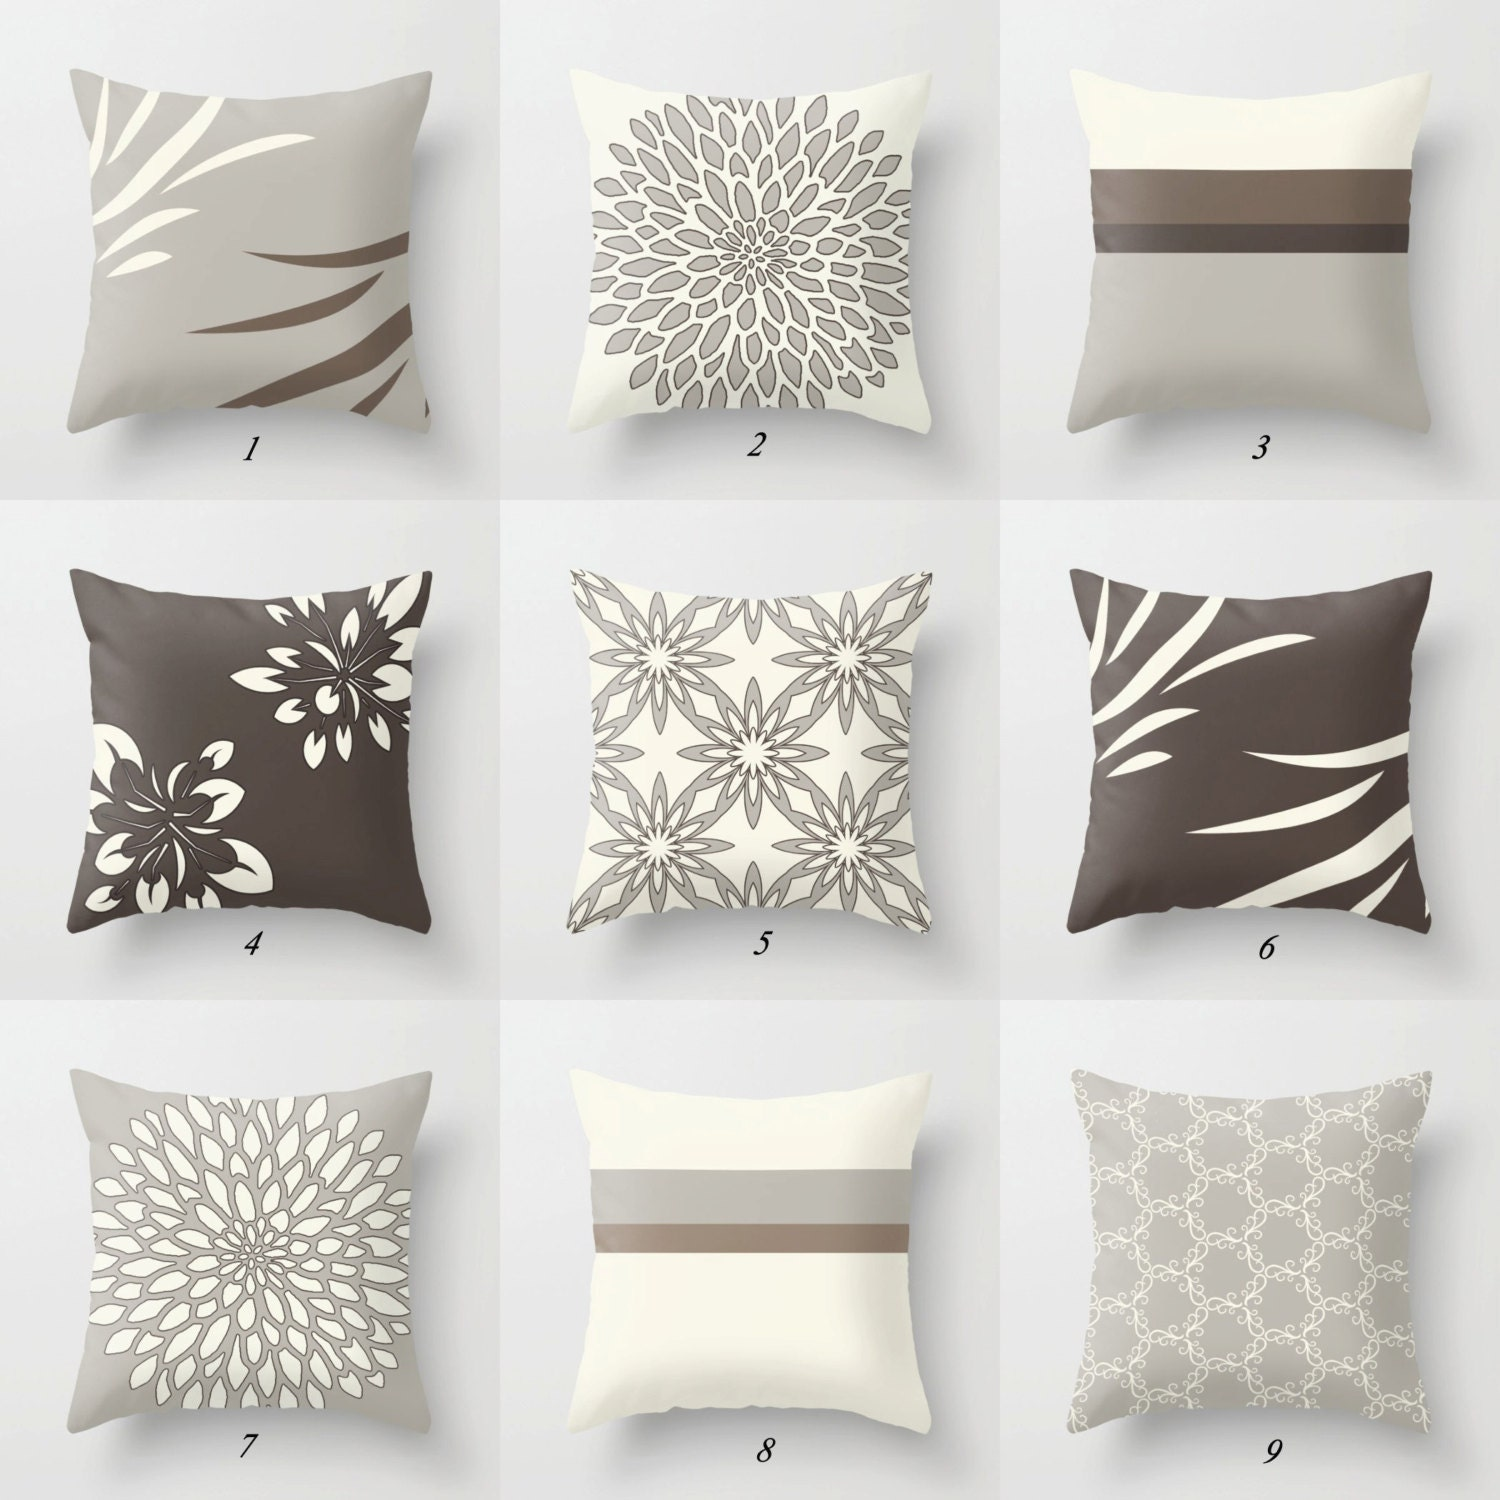 Gray Couch Pillows: Decorative Pillows Brown Beige Gray Throw Pillows Brown